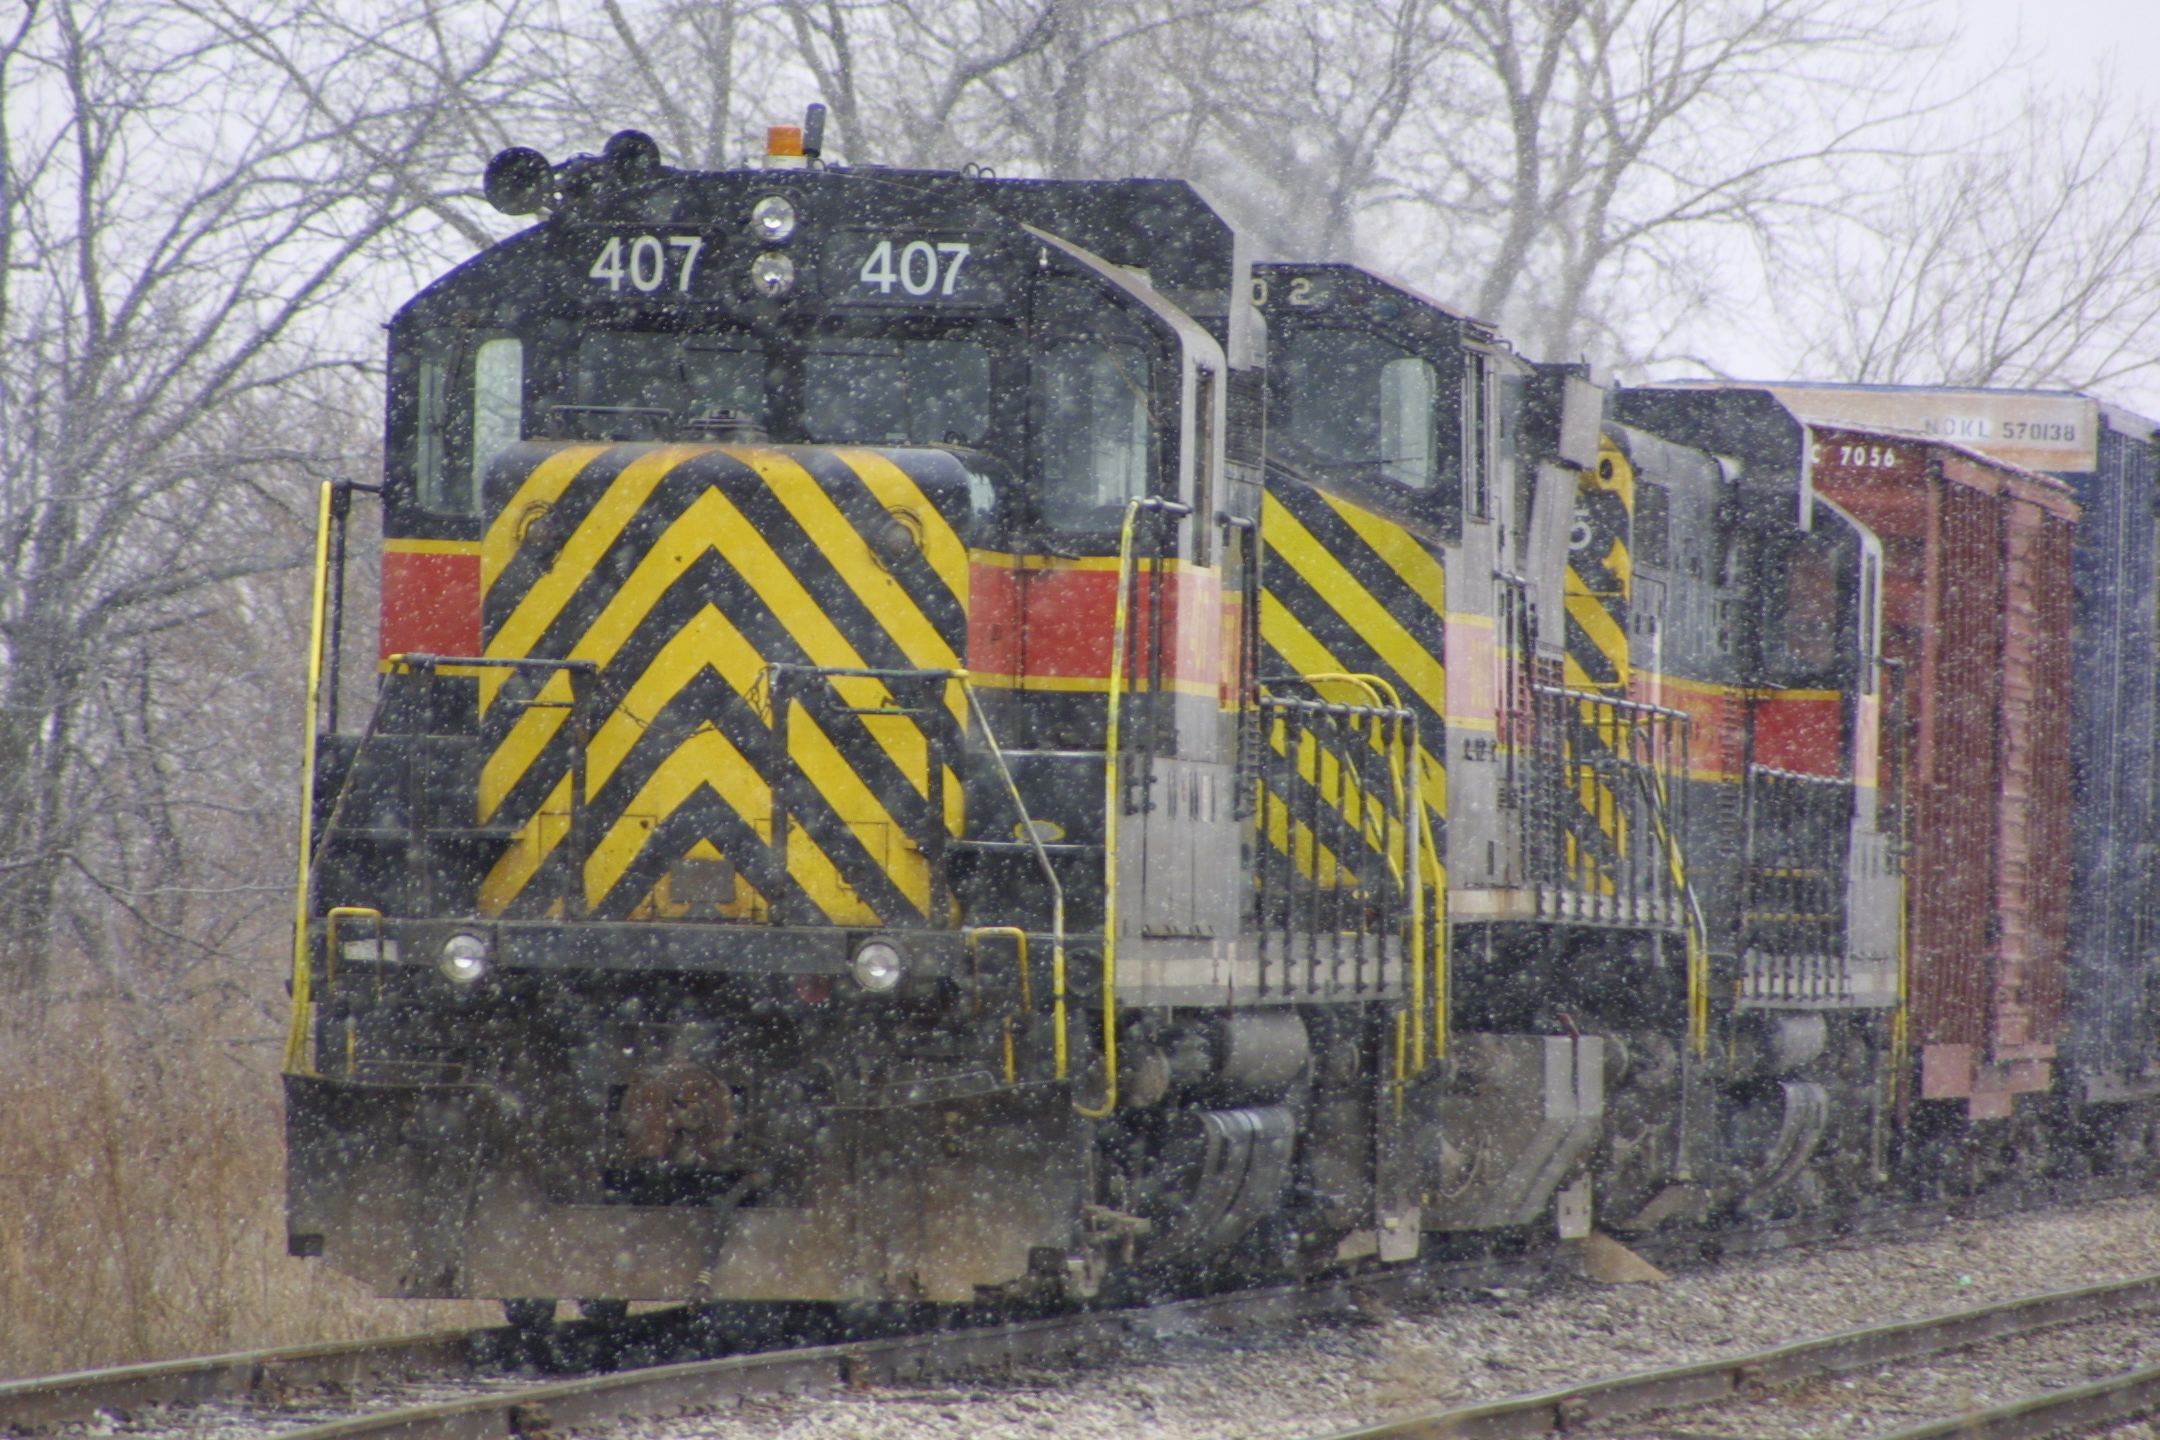 IAIS 407 at Walcott, IA on 23-Dec-2001